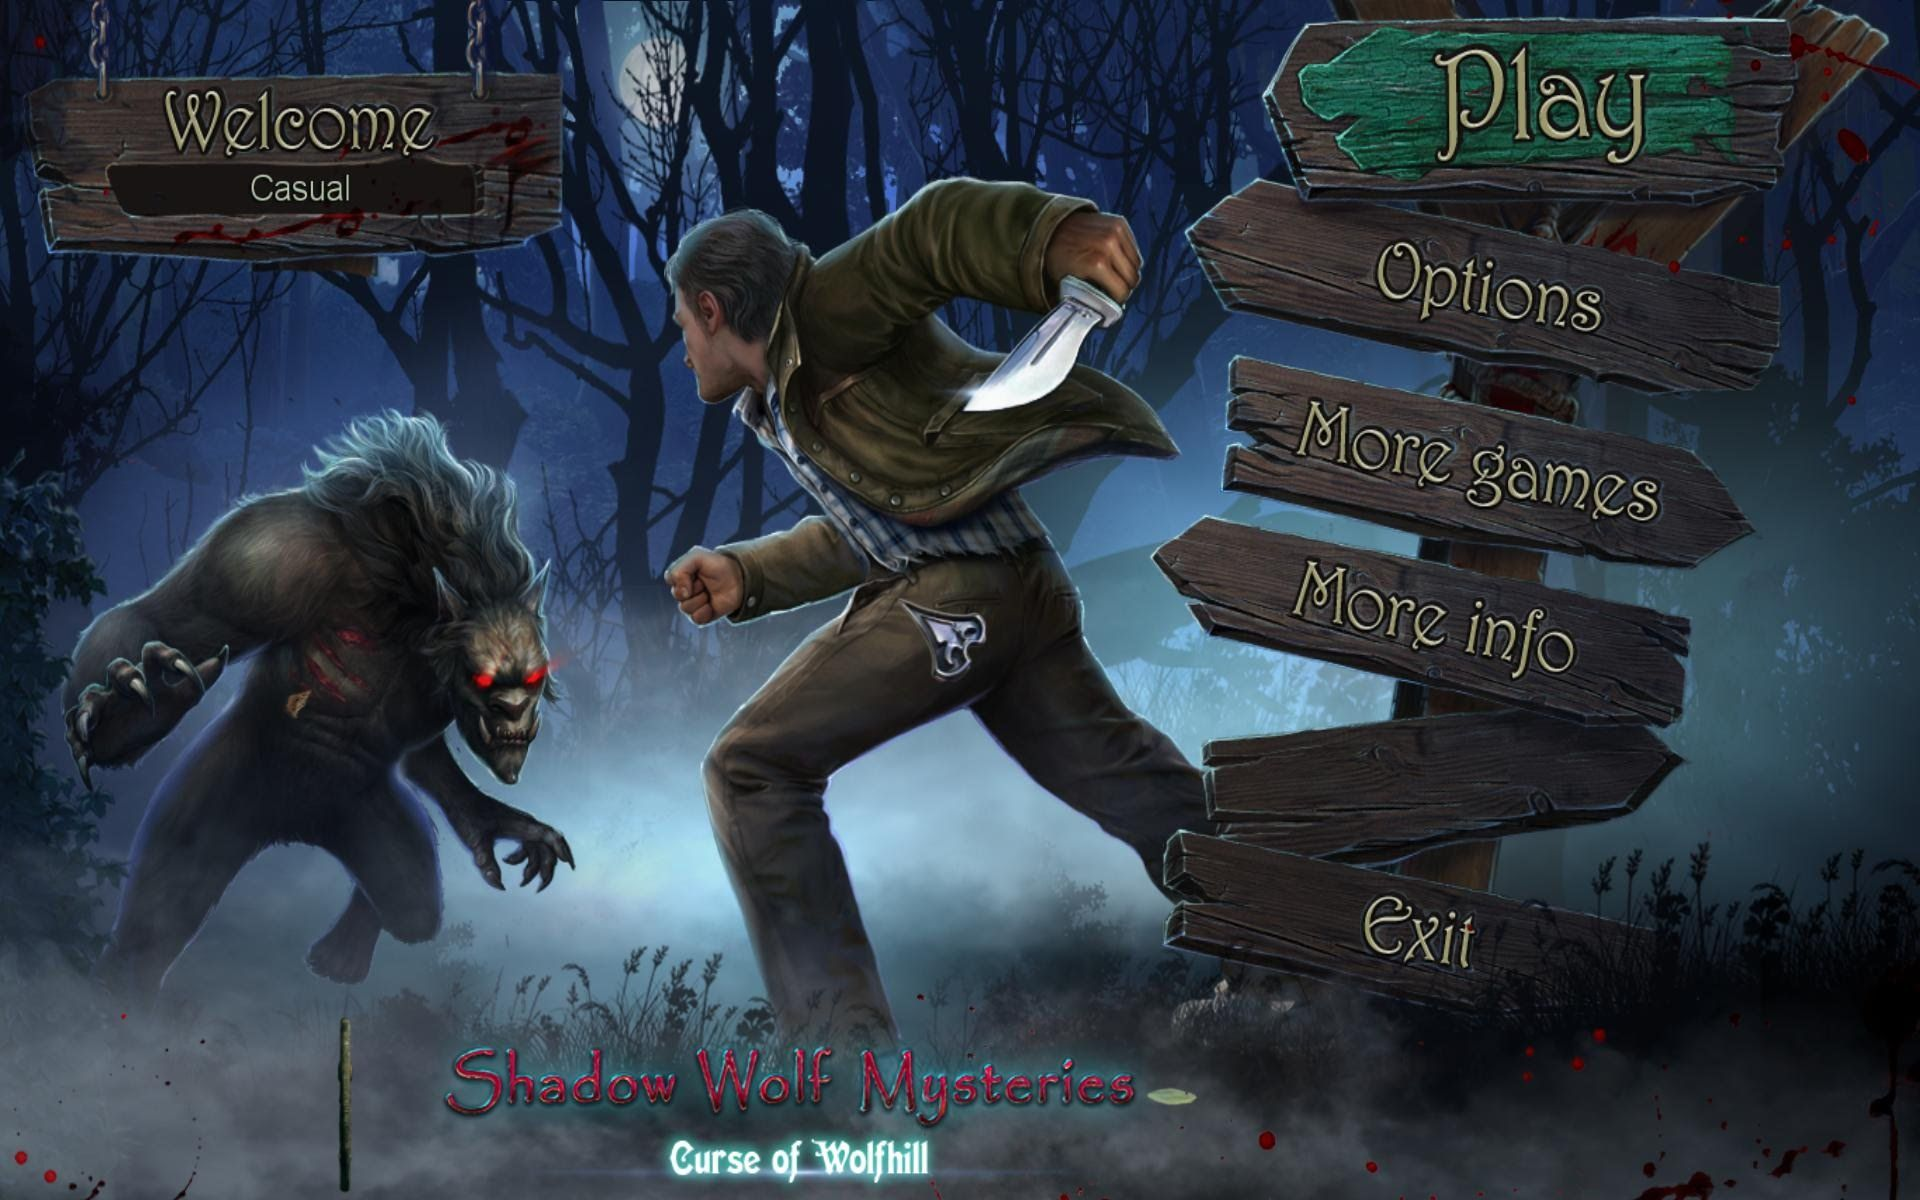 Mysteries 6 Curse of Wolfhill Collector's Edition